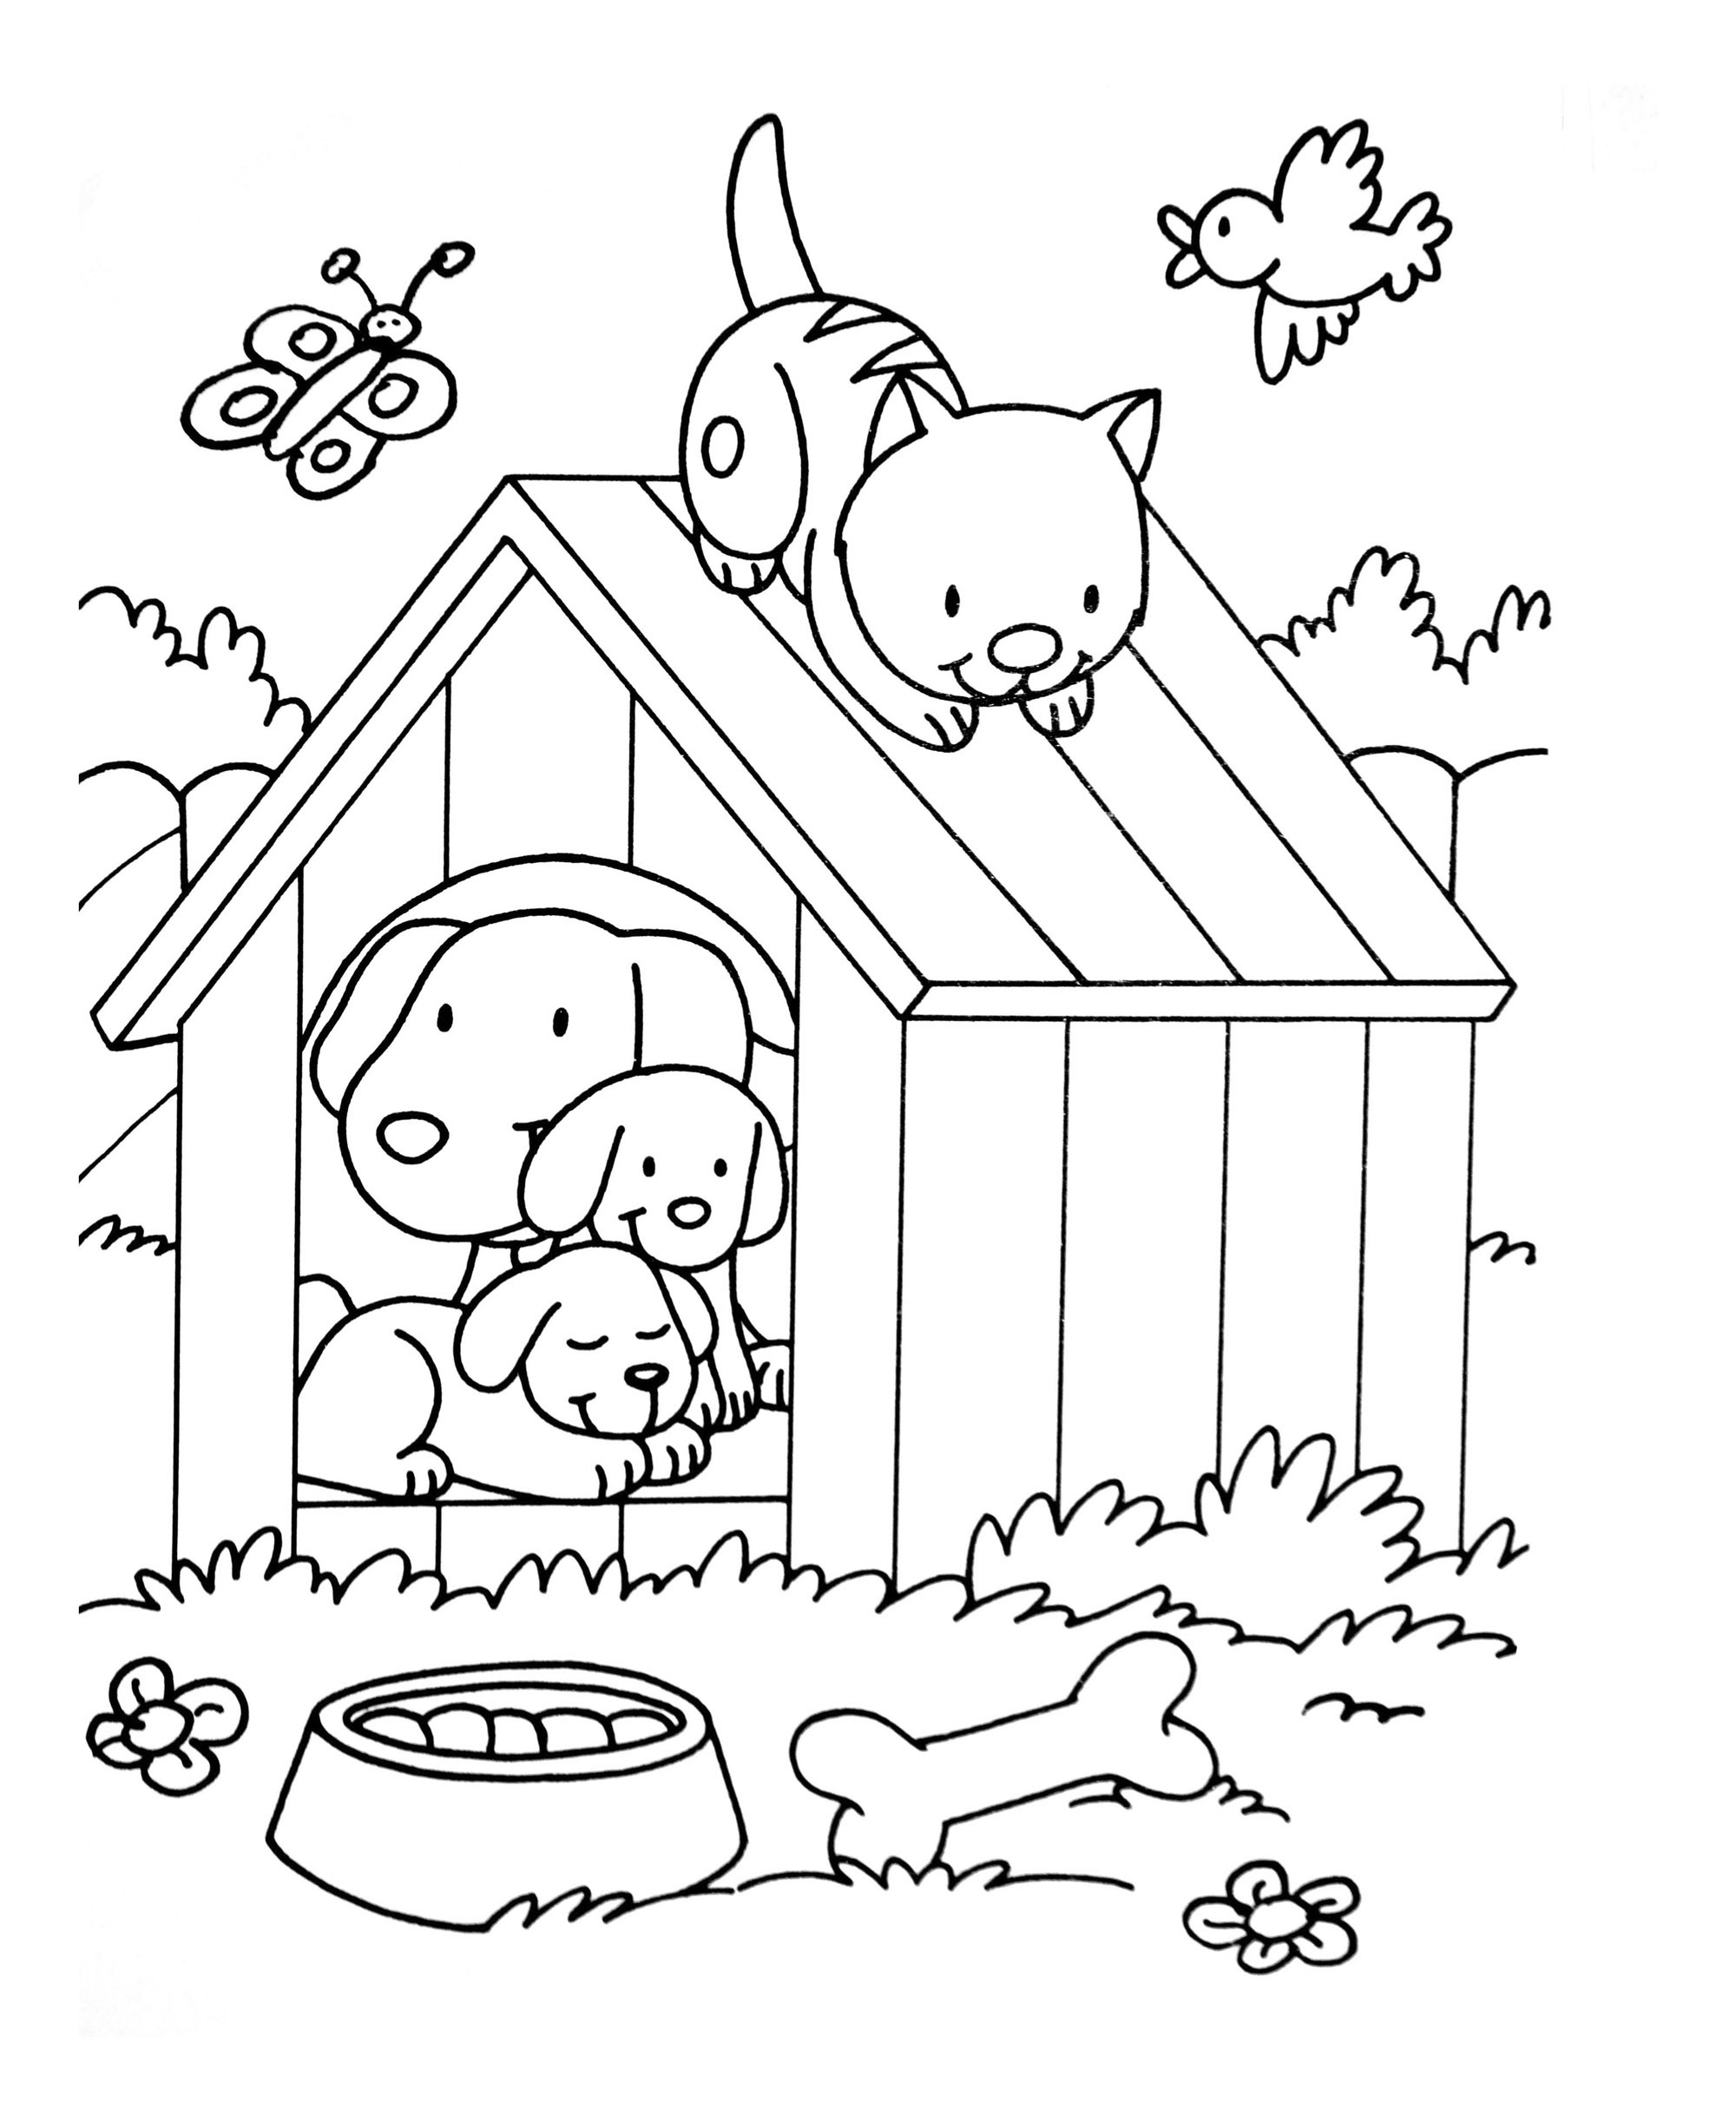 Dog cat birdjpg | Animal Coloring pages for kids to print & color